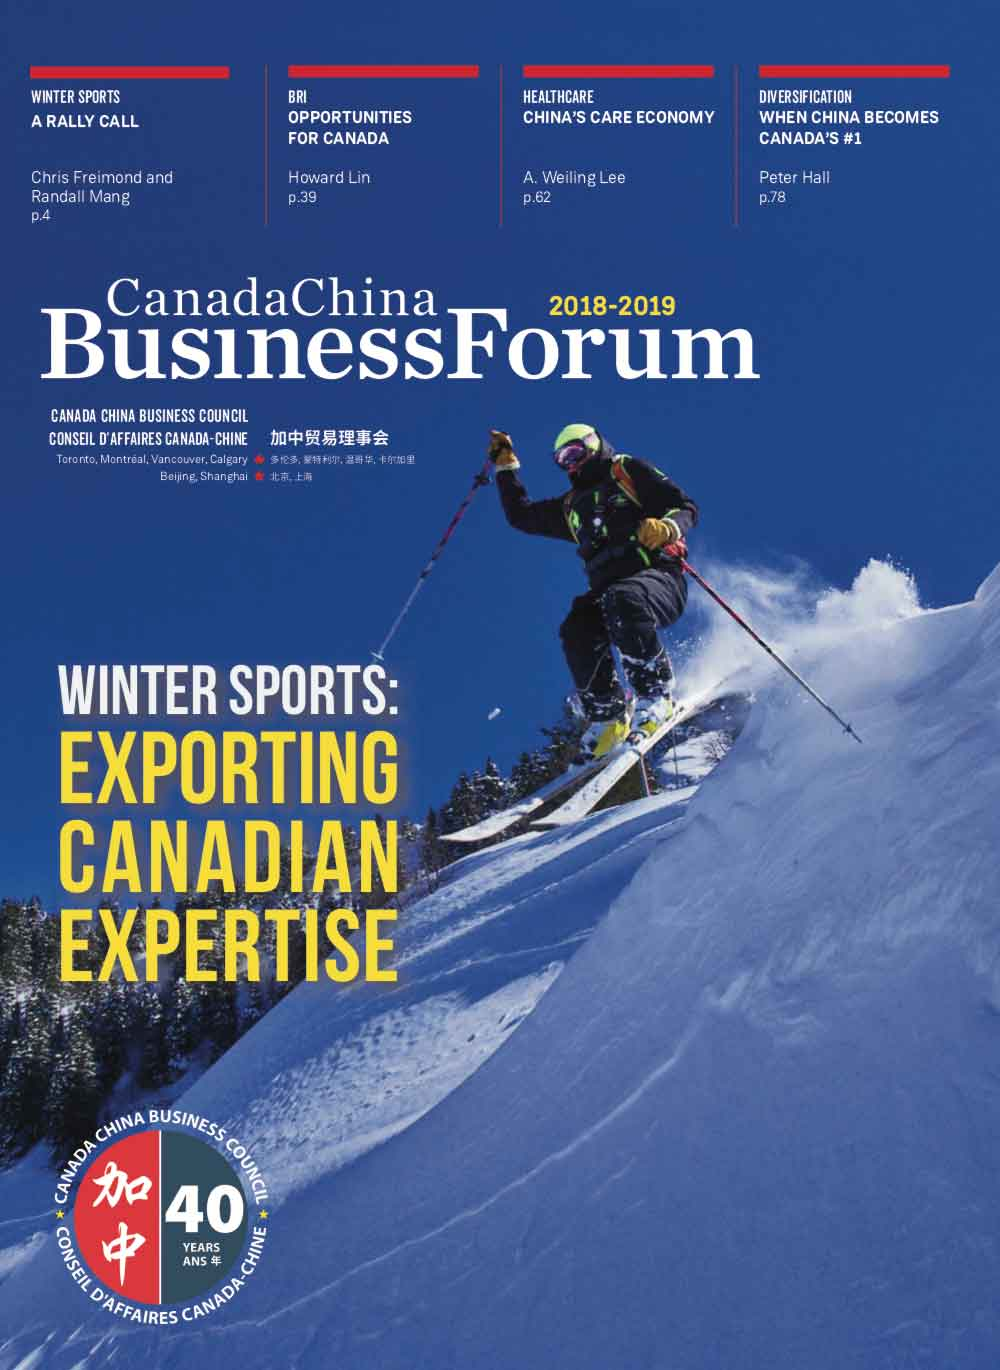 Canada China Business Council